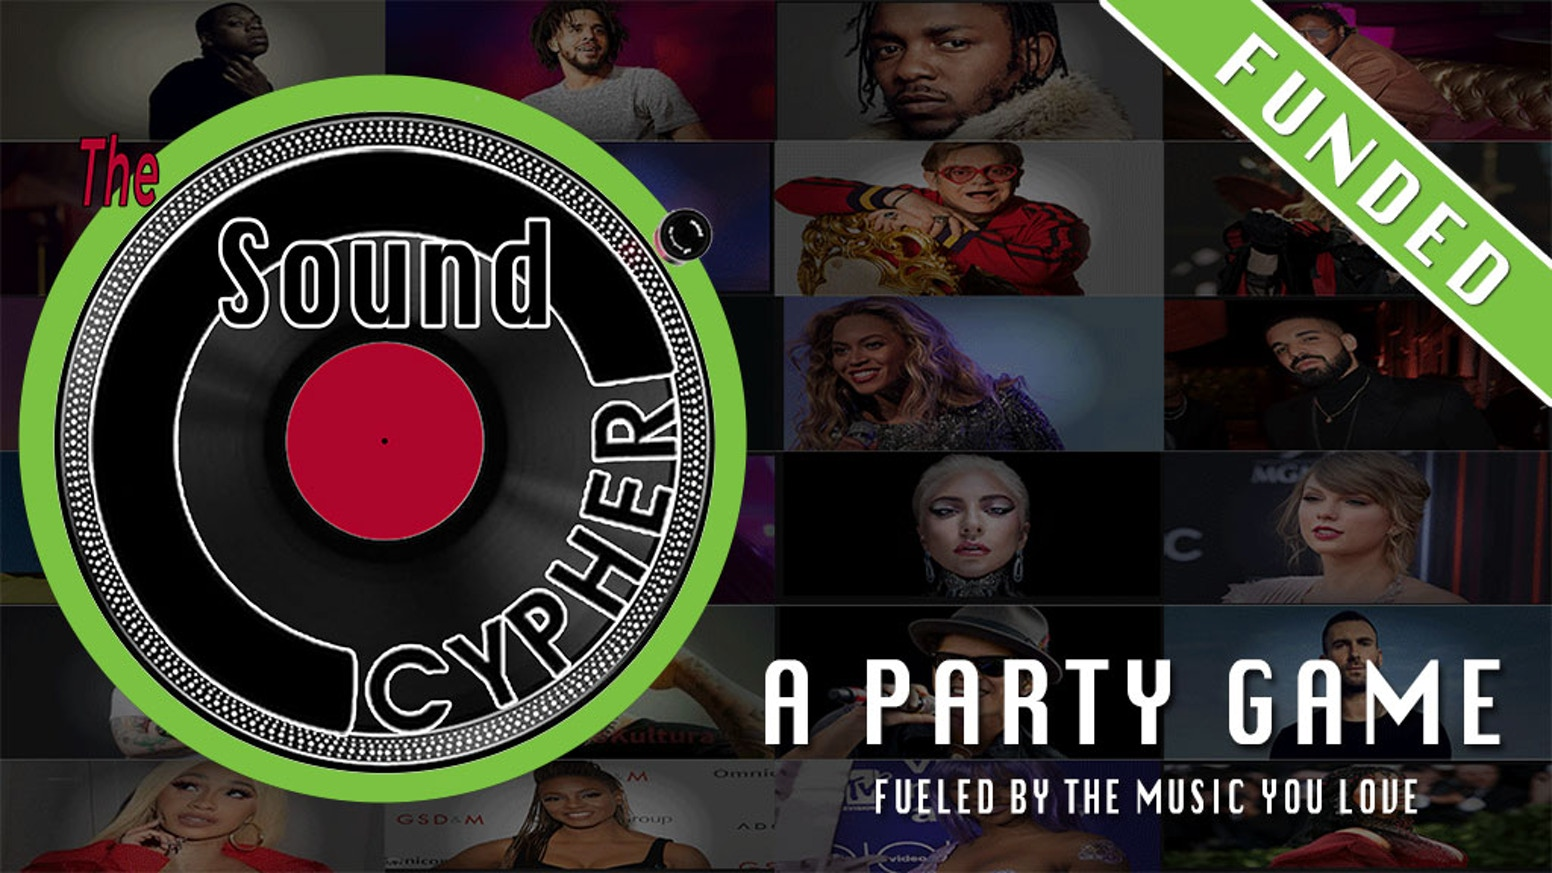 A party game fueled by the music you LOVE!